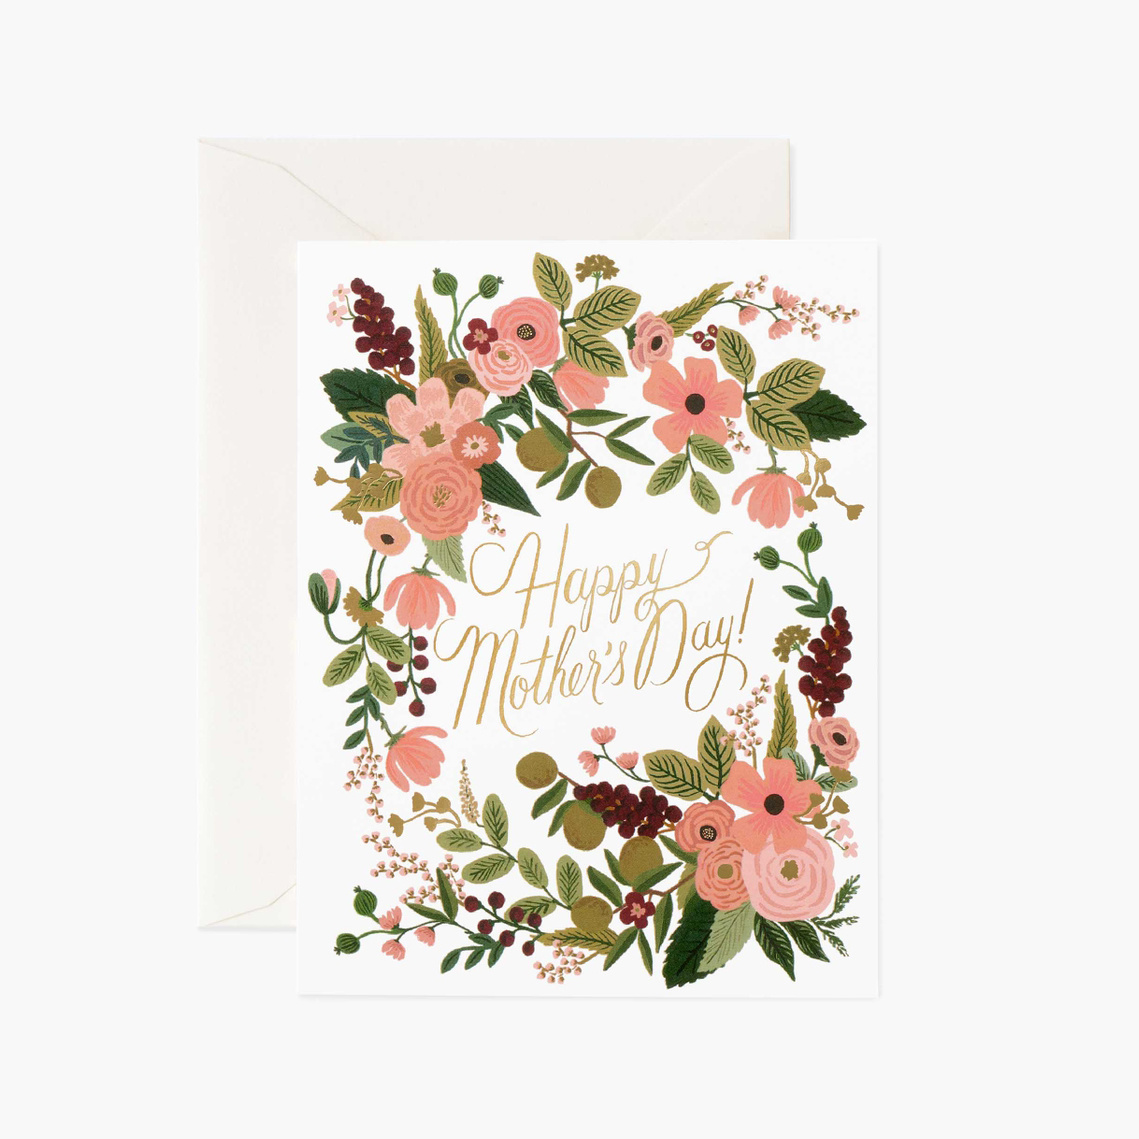 Rifle Paper Co - RP Rifle Paper Co - Garden Party Mother's Day